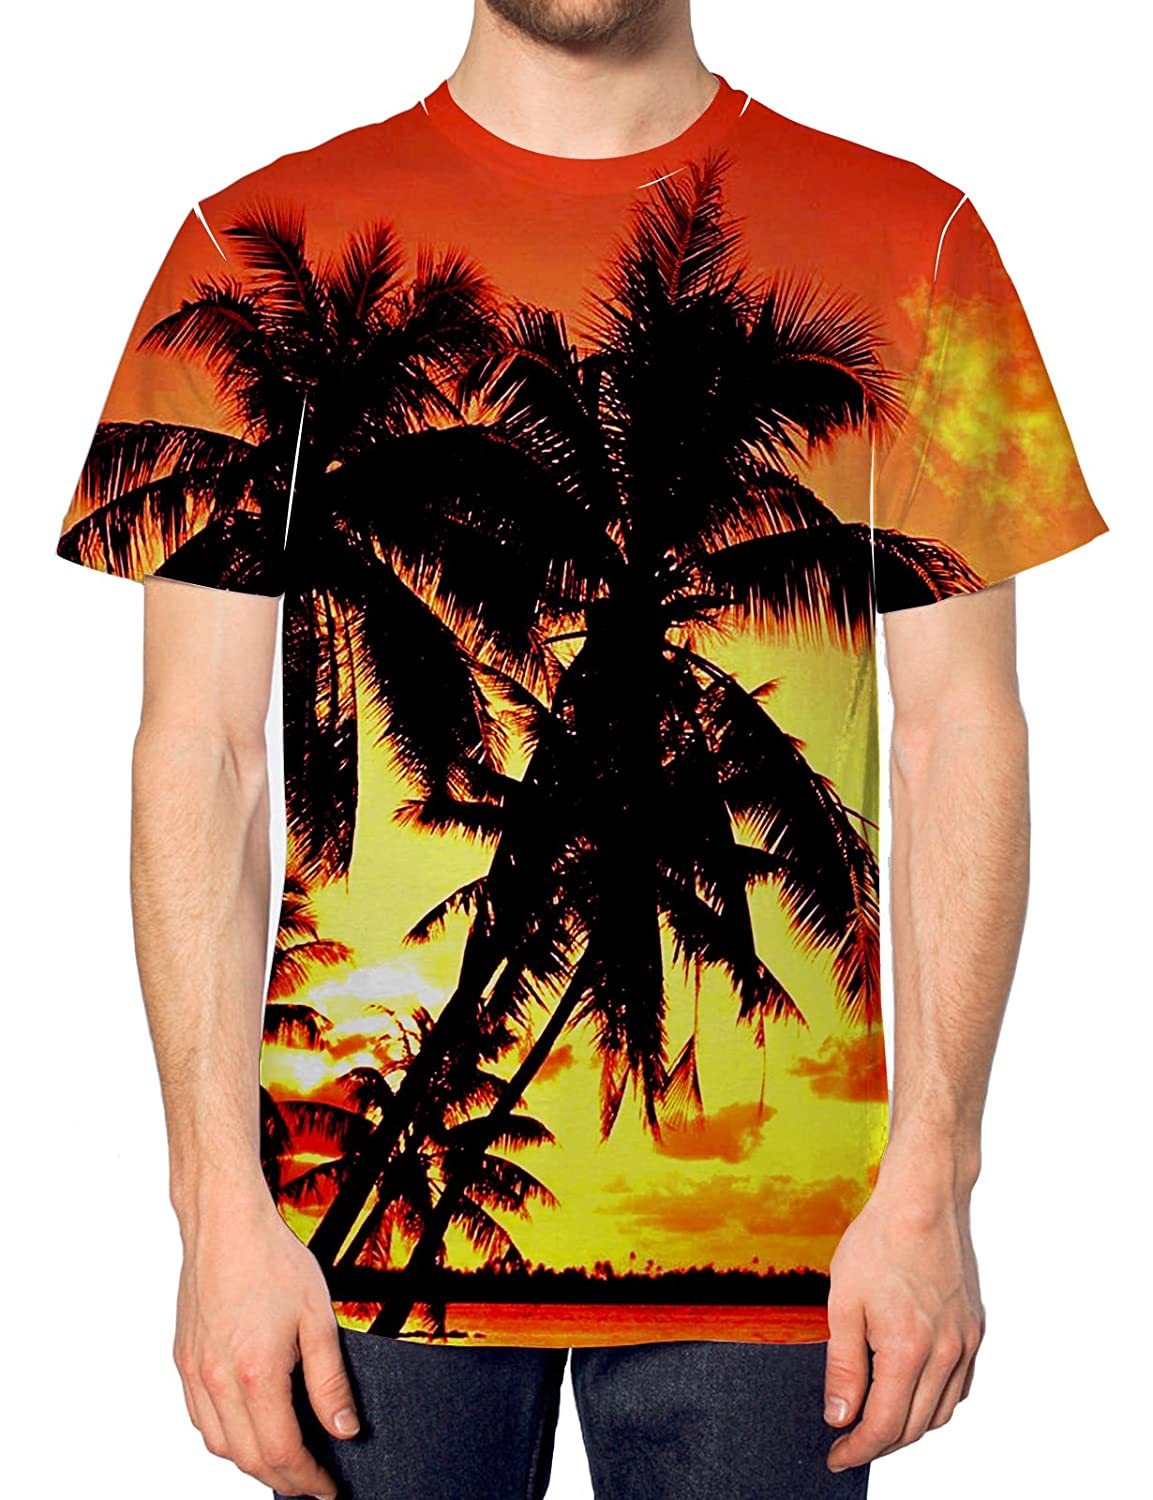 Palm Tree All Over Print T shirt Summer Festival Holiday Swag Indie Hot Tan Men